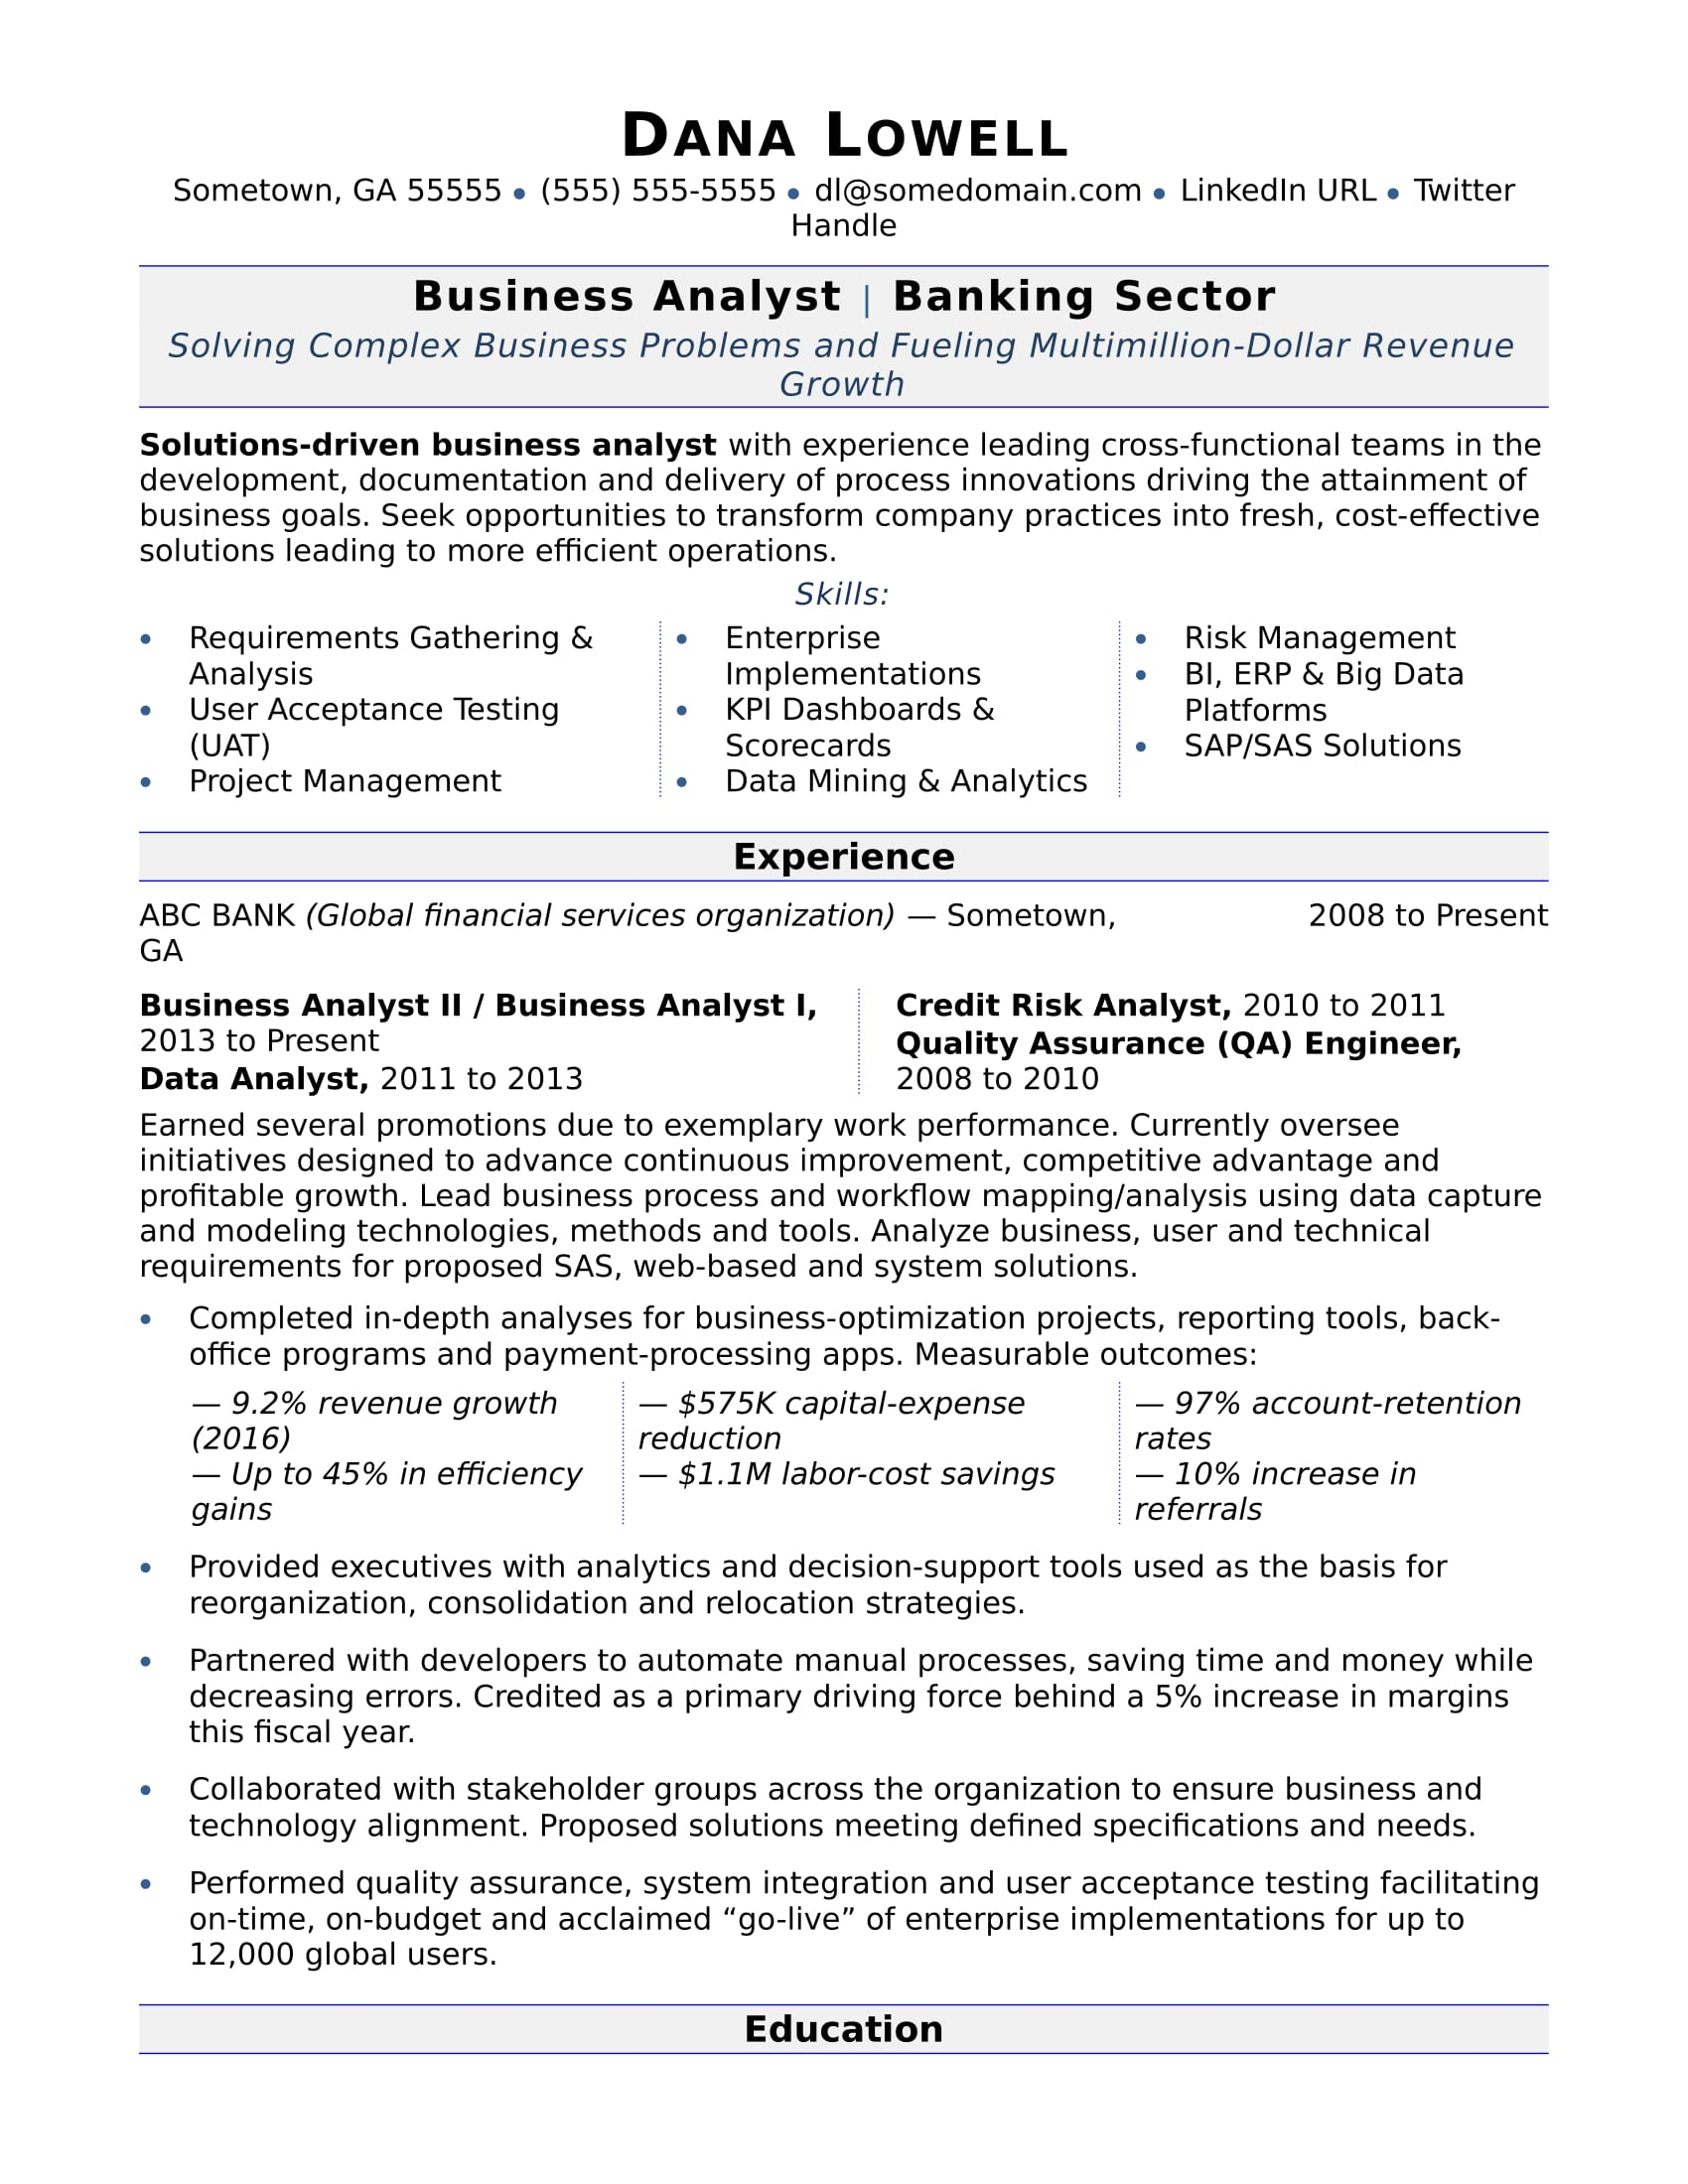 business analyst resume sample - Winning Resume Template